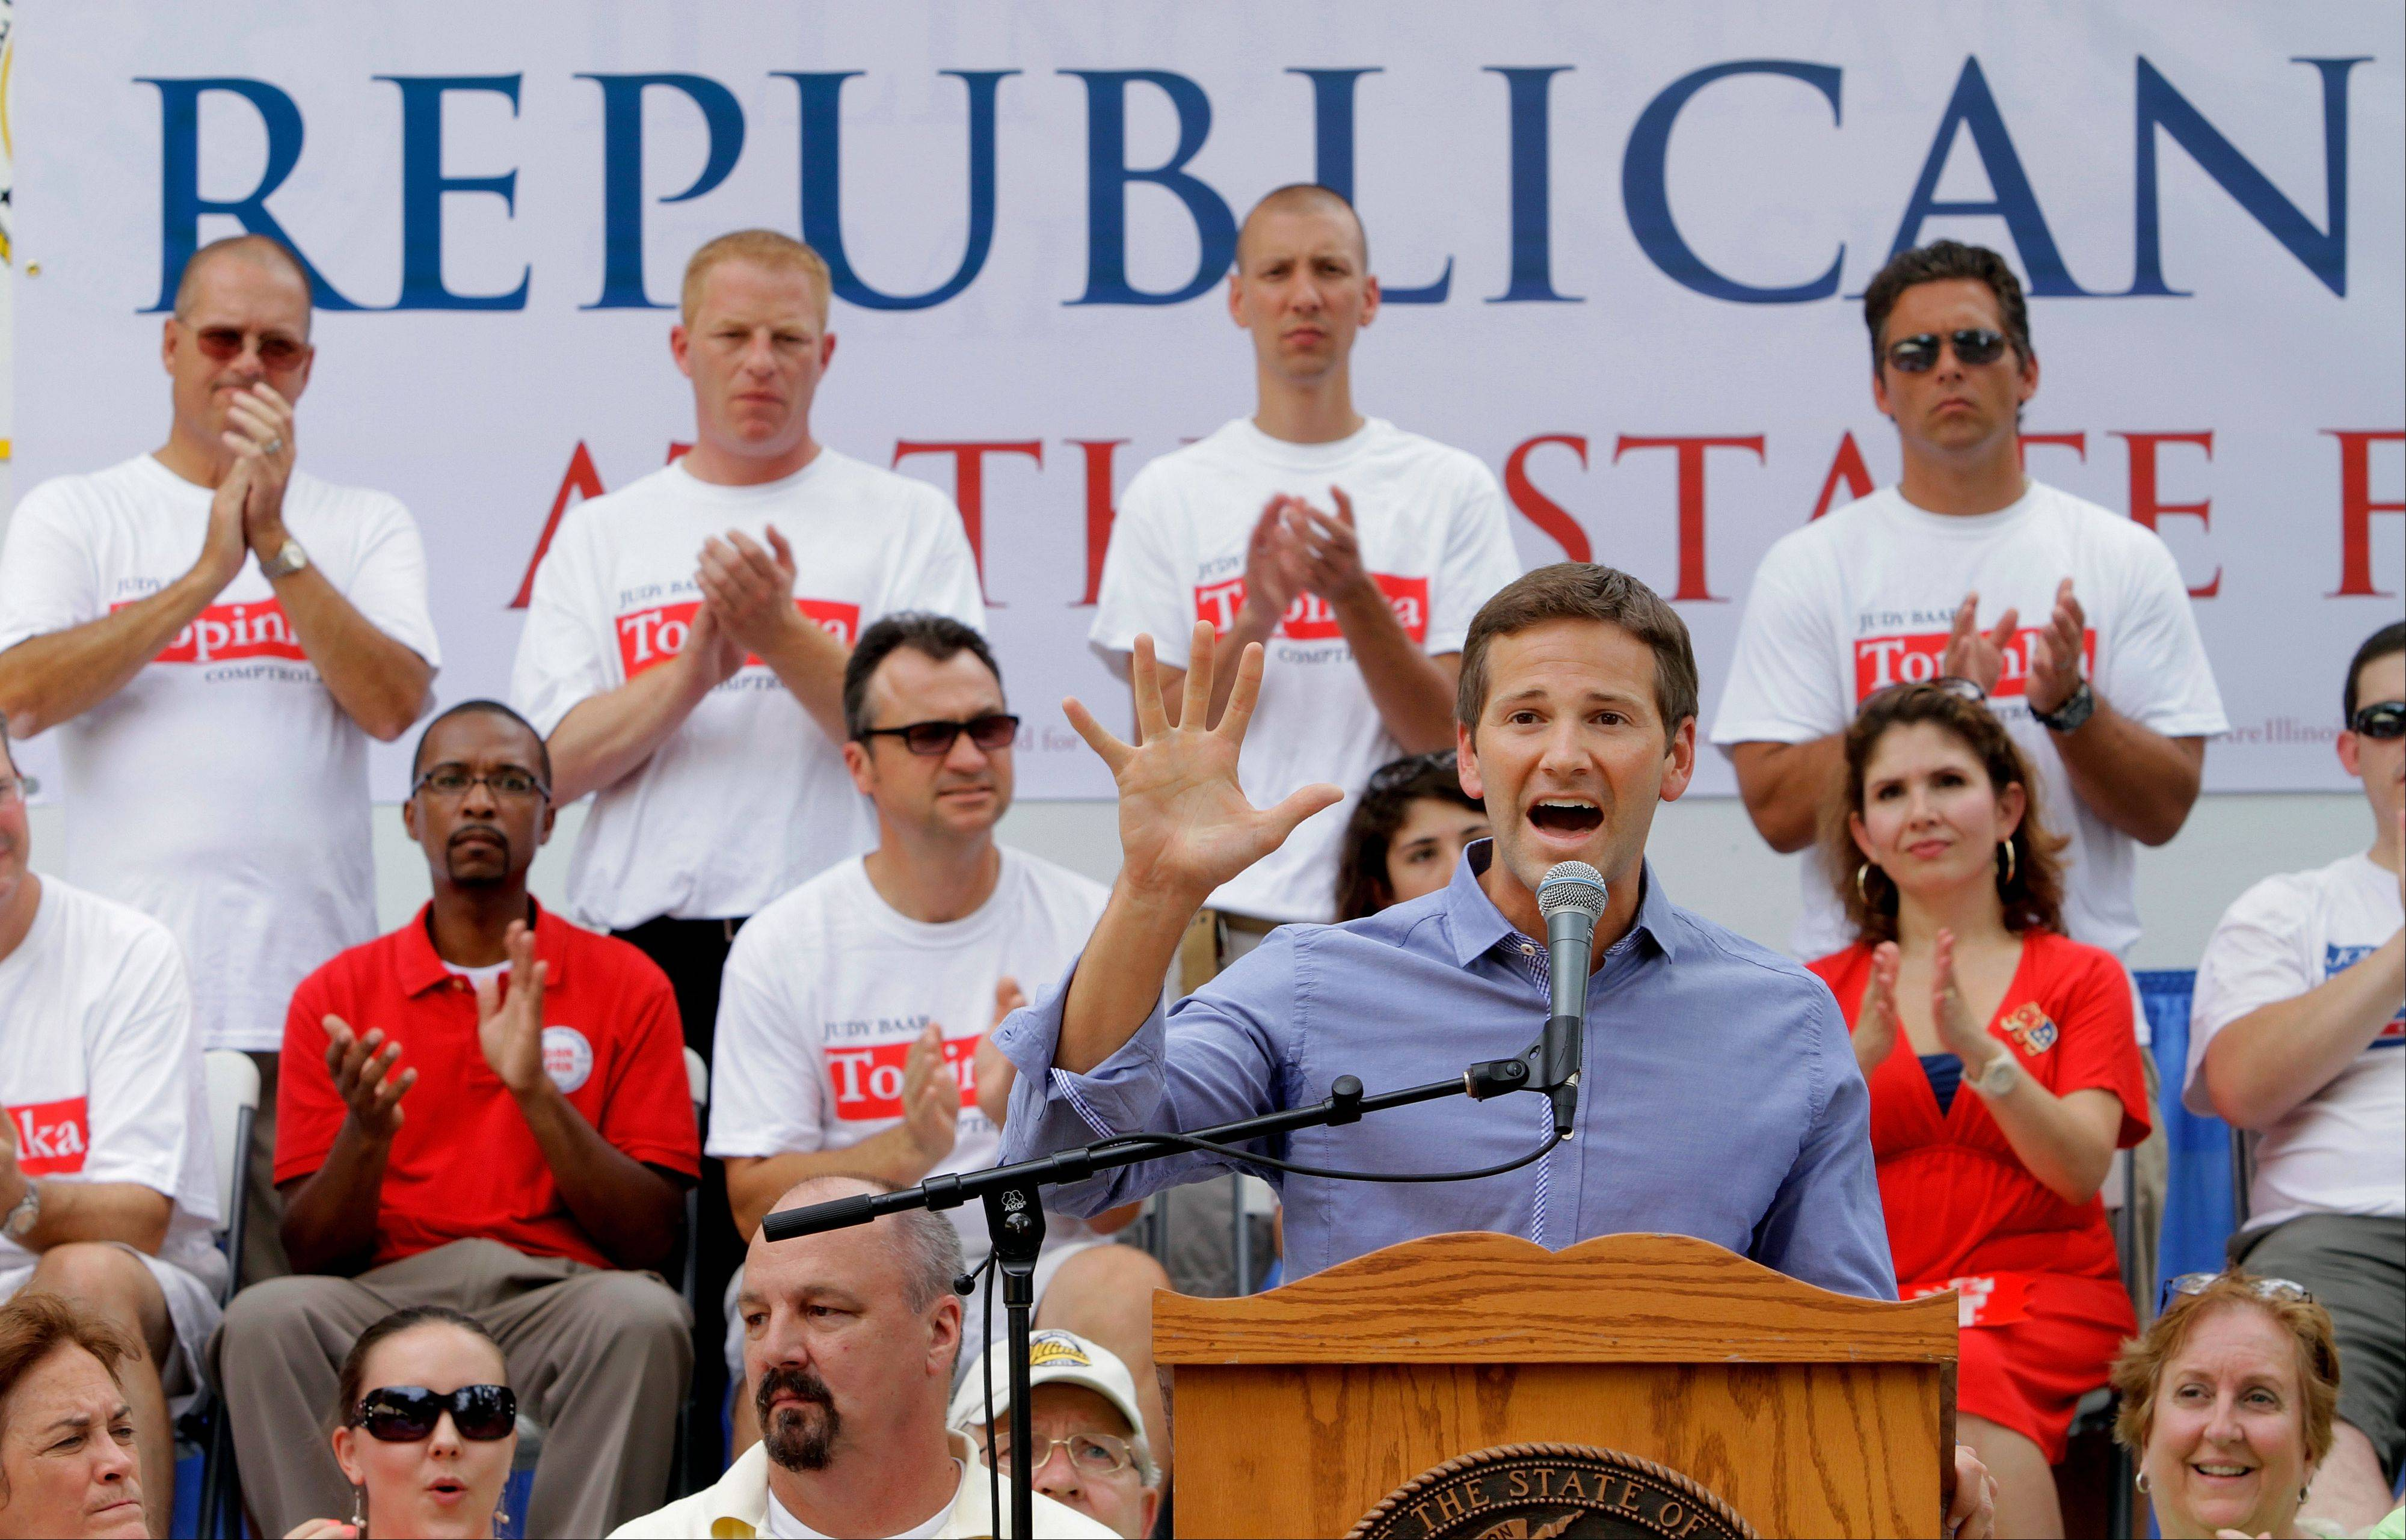 U.S. Rep. Aaron Schock of Peoria at a 2011 Republican Day rally at the Illinois State Fairgrounds in Springfield.